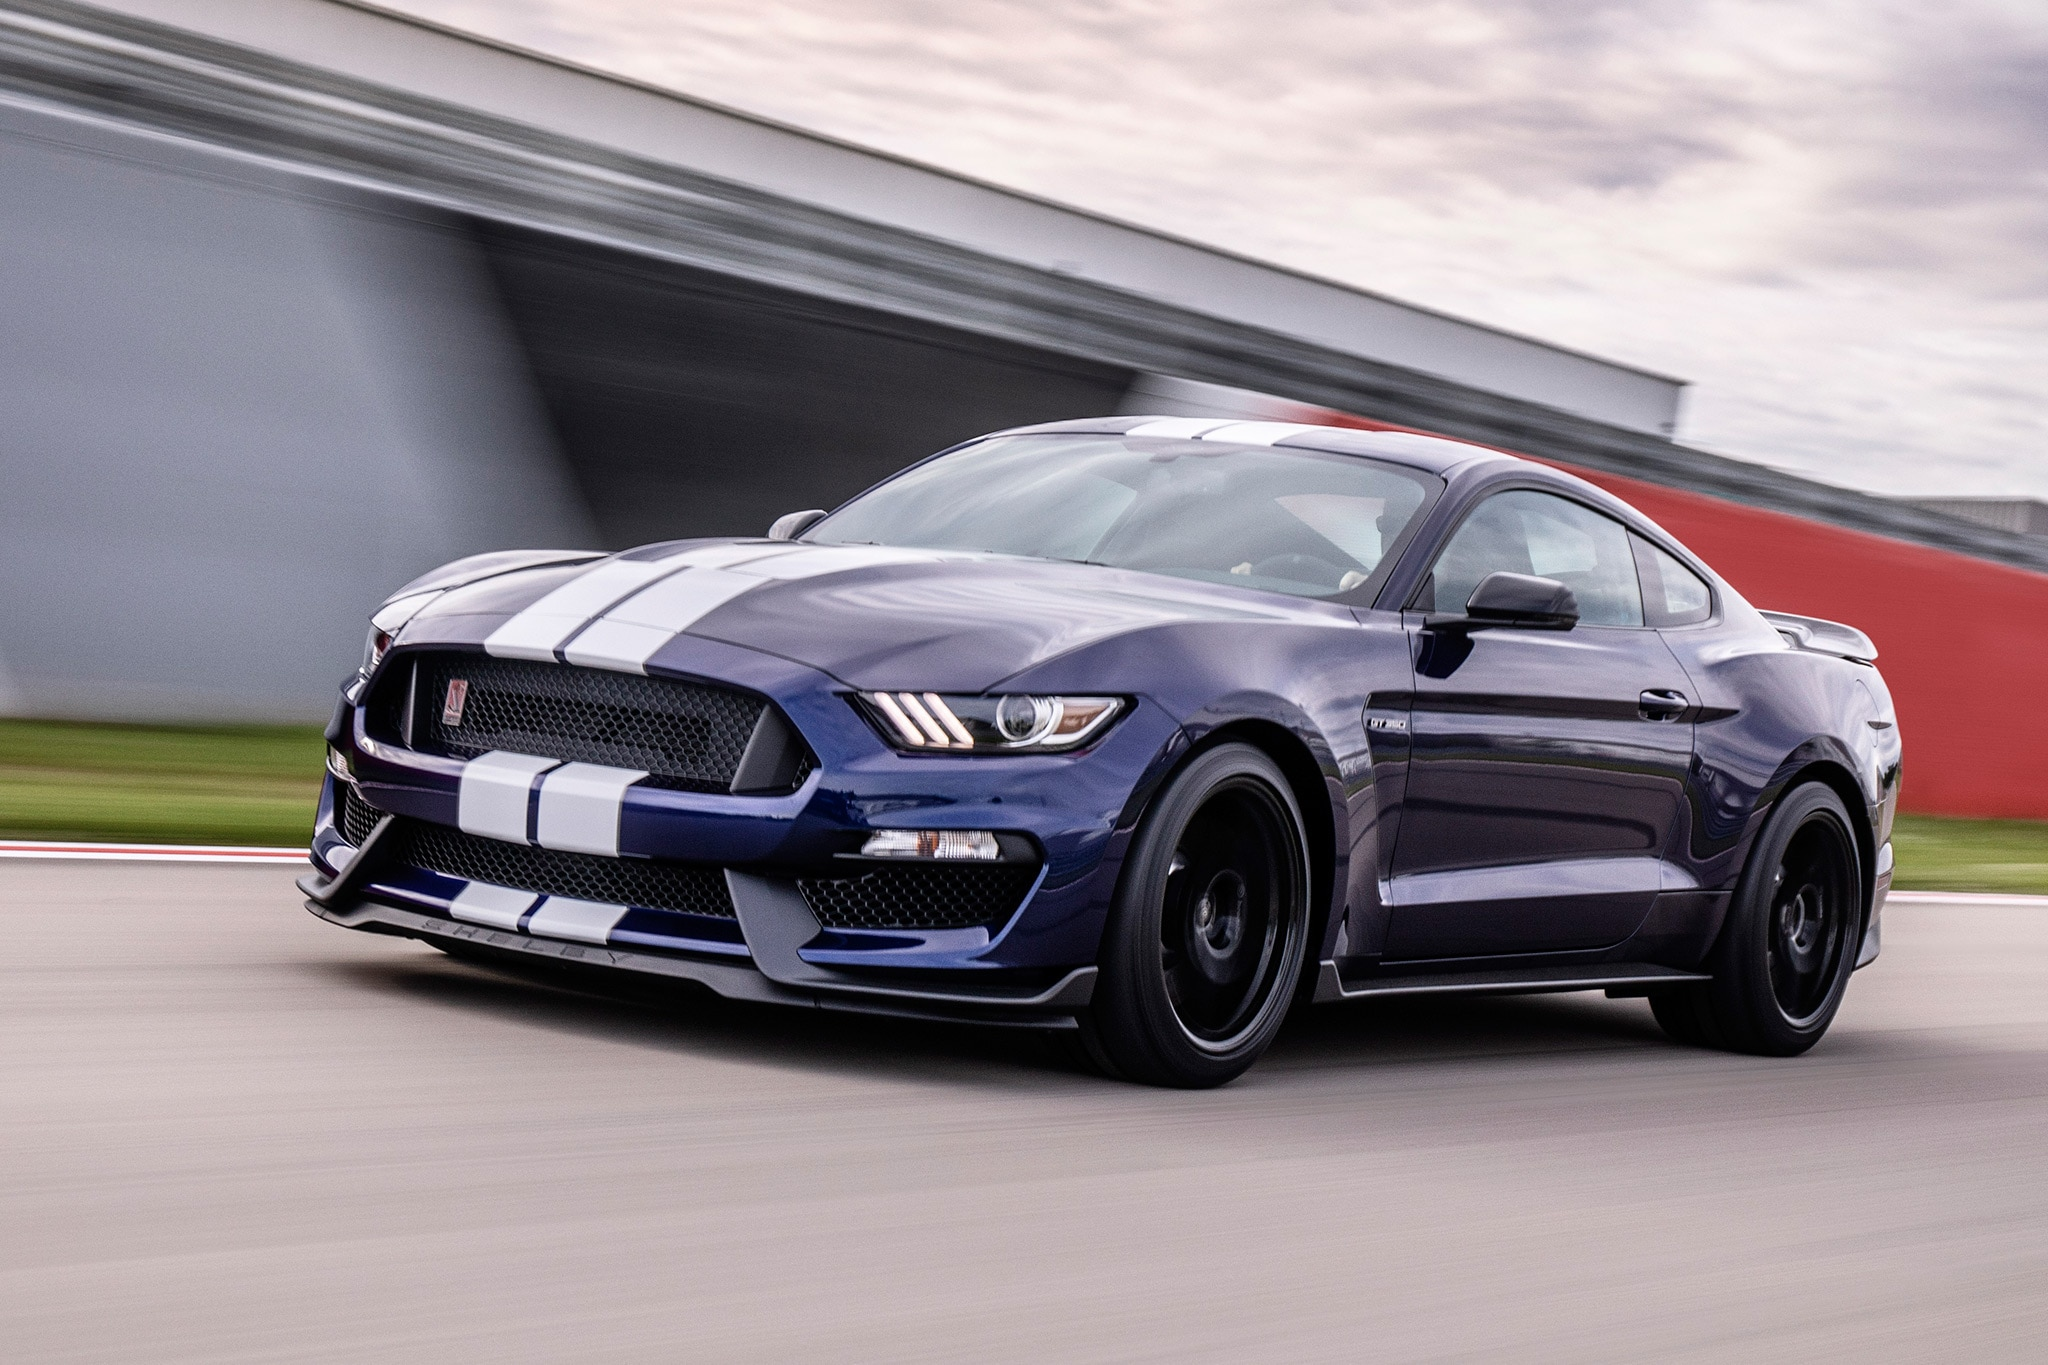 2018 Shelby Gt350 >> Ford Upgrades Mustang Shelby GT350 for 2019 | Automobile Magazine